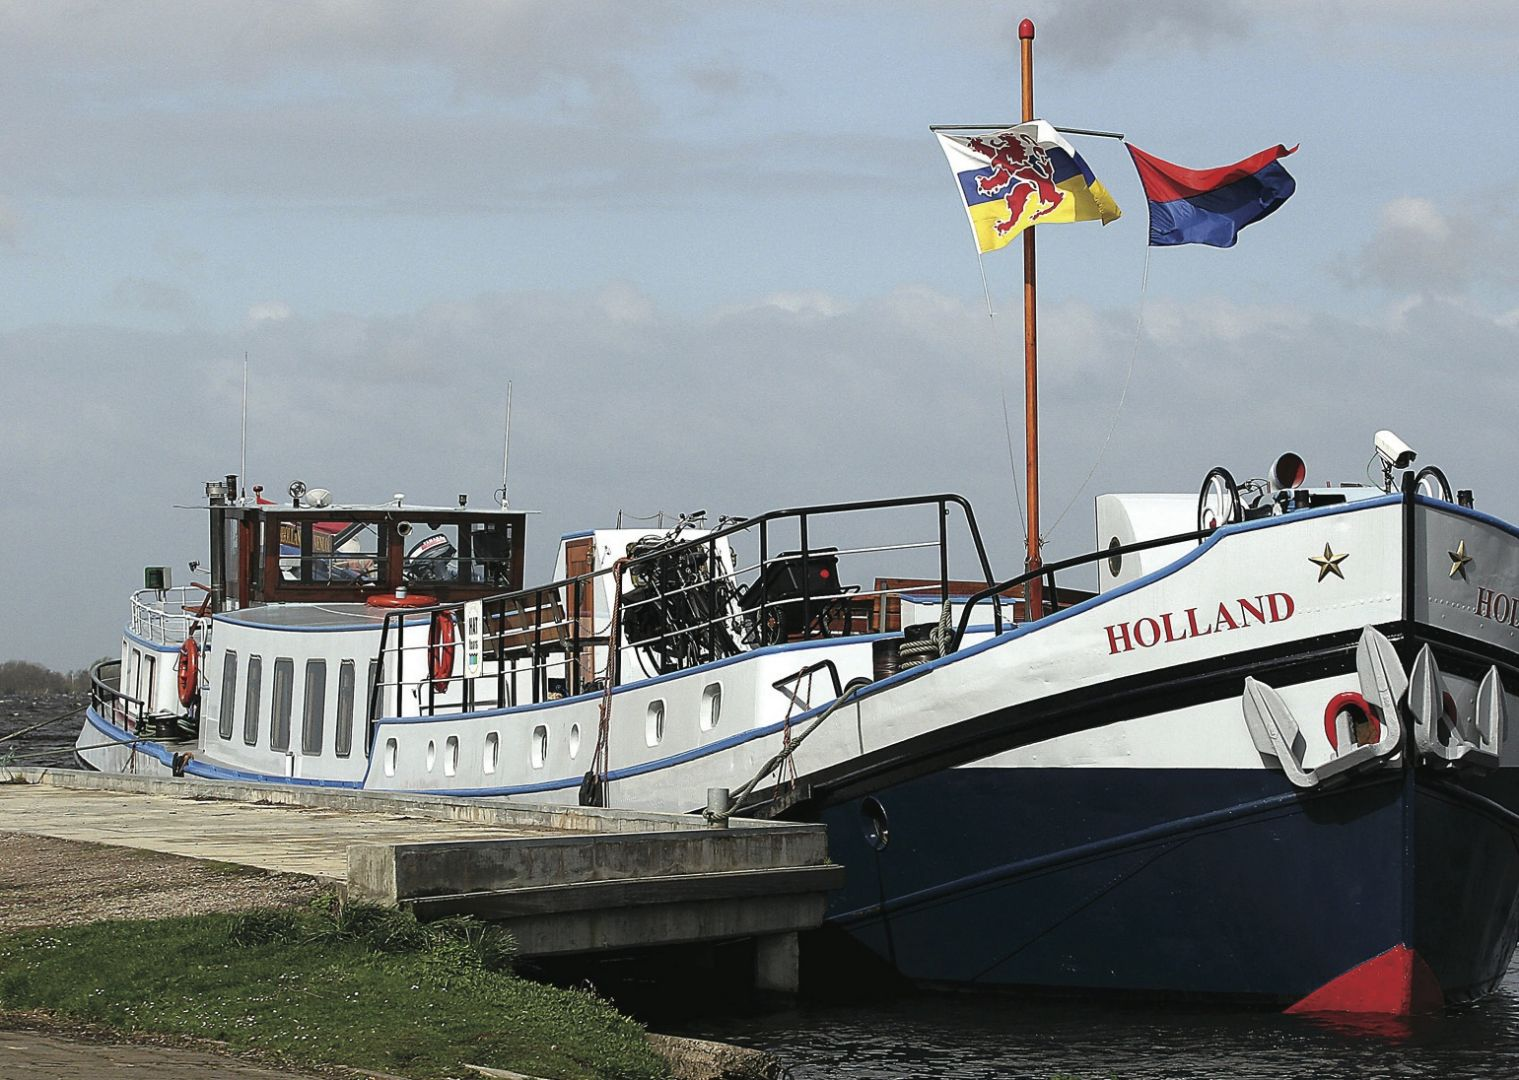 HFhollandcycling5.jpg - Holland - The Tulip Tour - Bike and Barge Holiday - Leisure Cycling